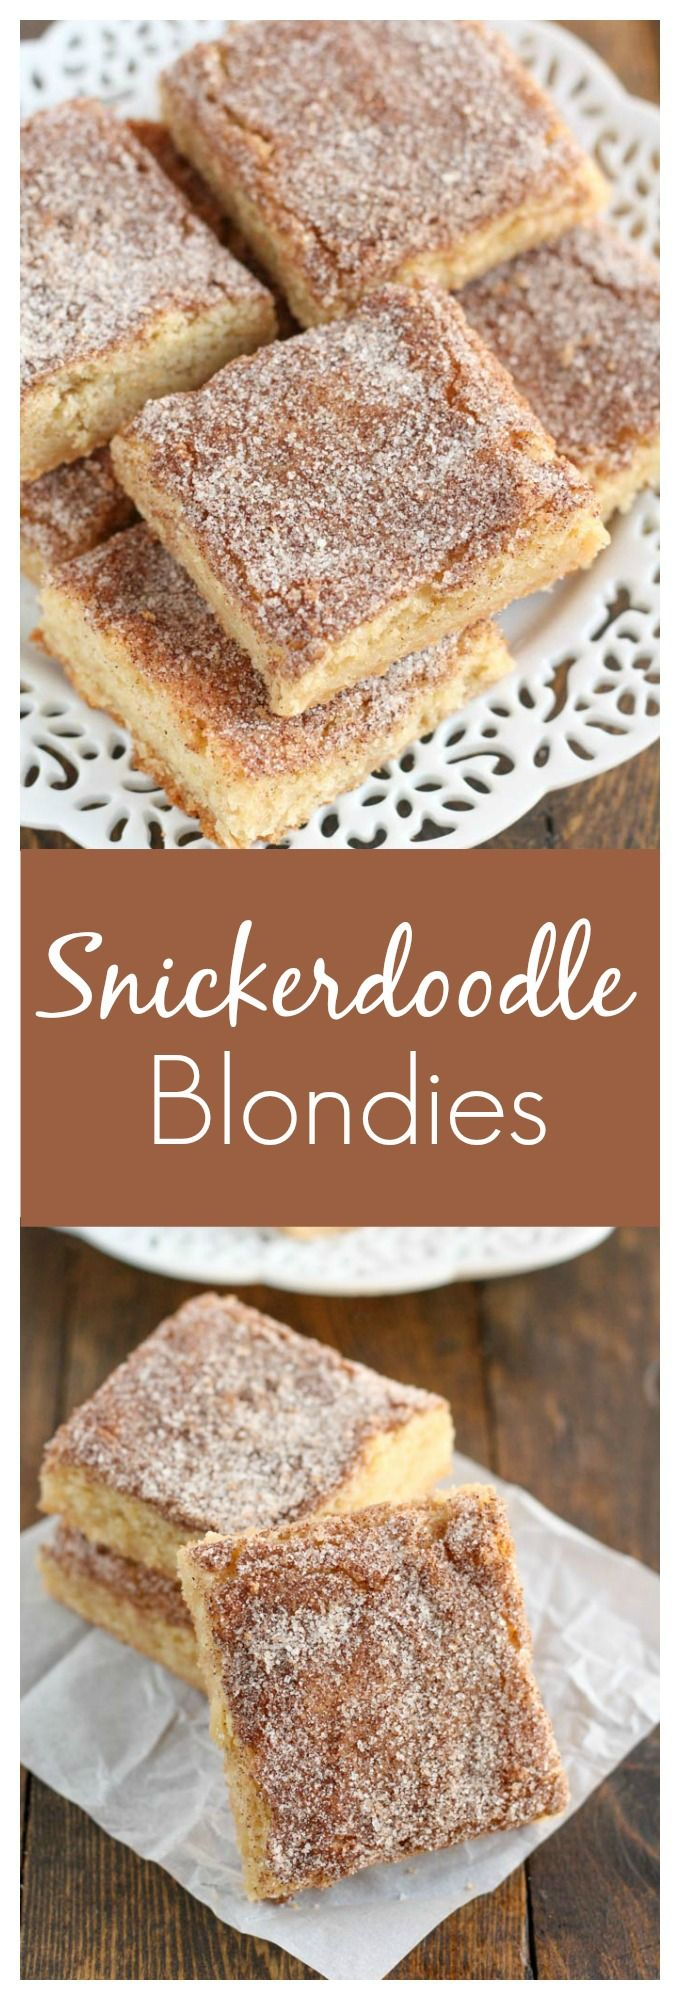 These Snickerdoodle Blondies are one of the easiest treats you will ever make! Perfect for the holidays!